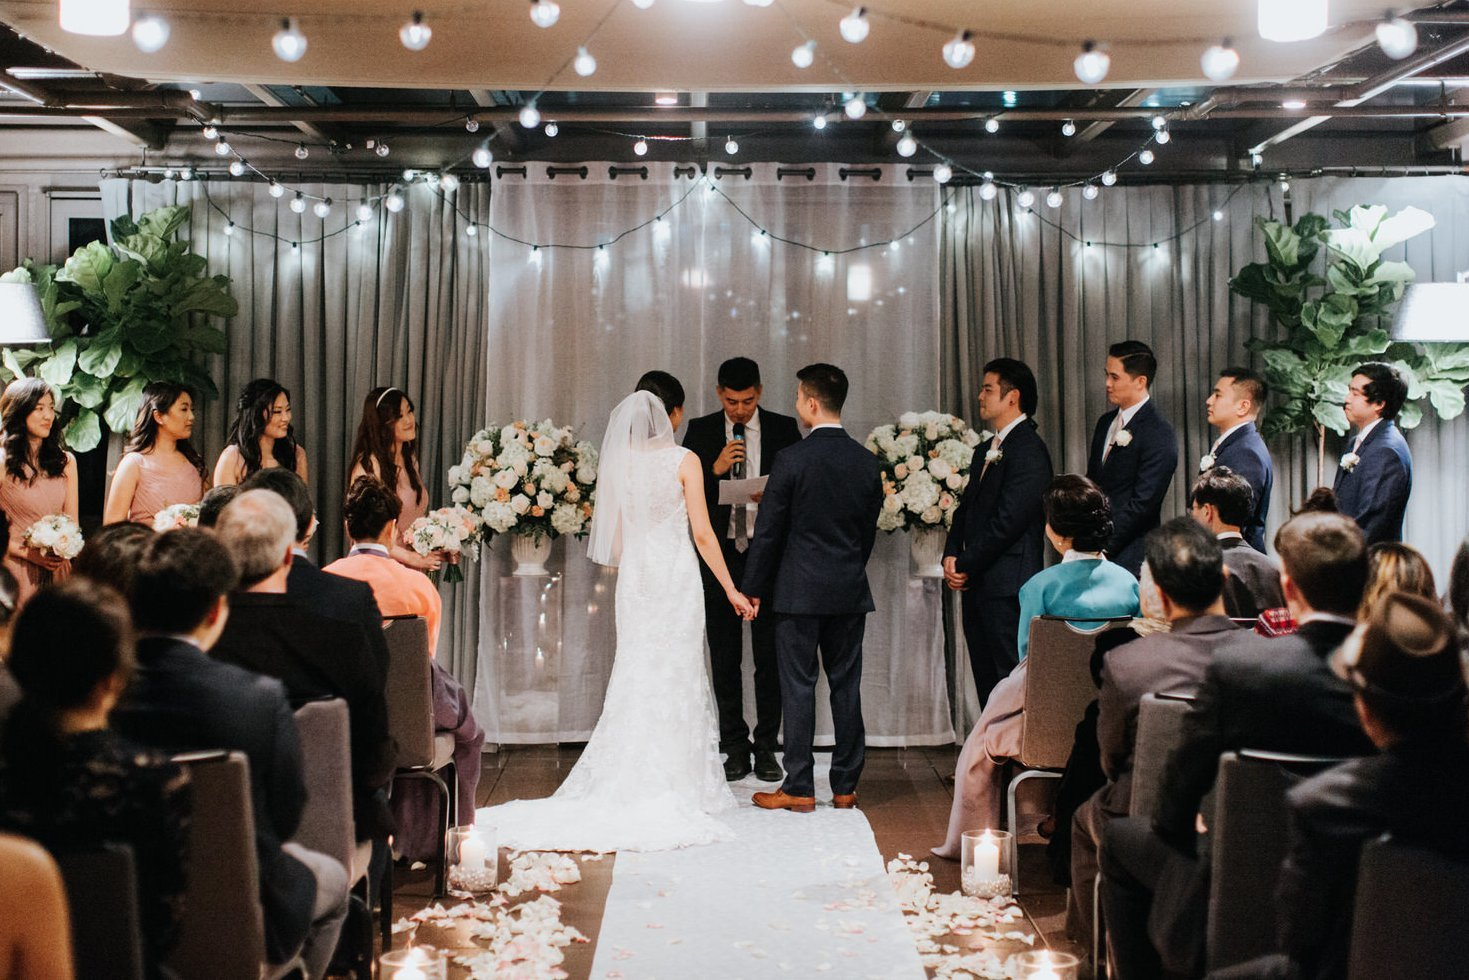 The couples stands during their wedding